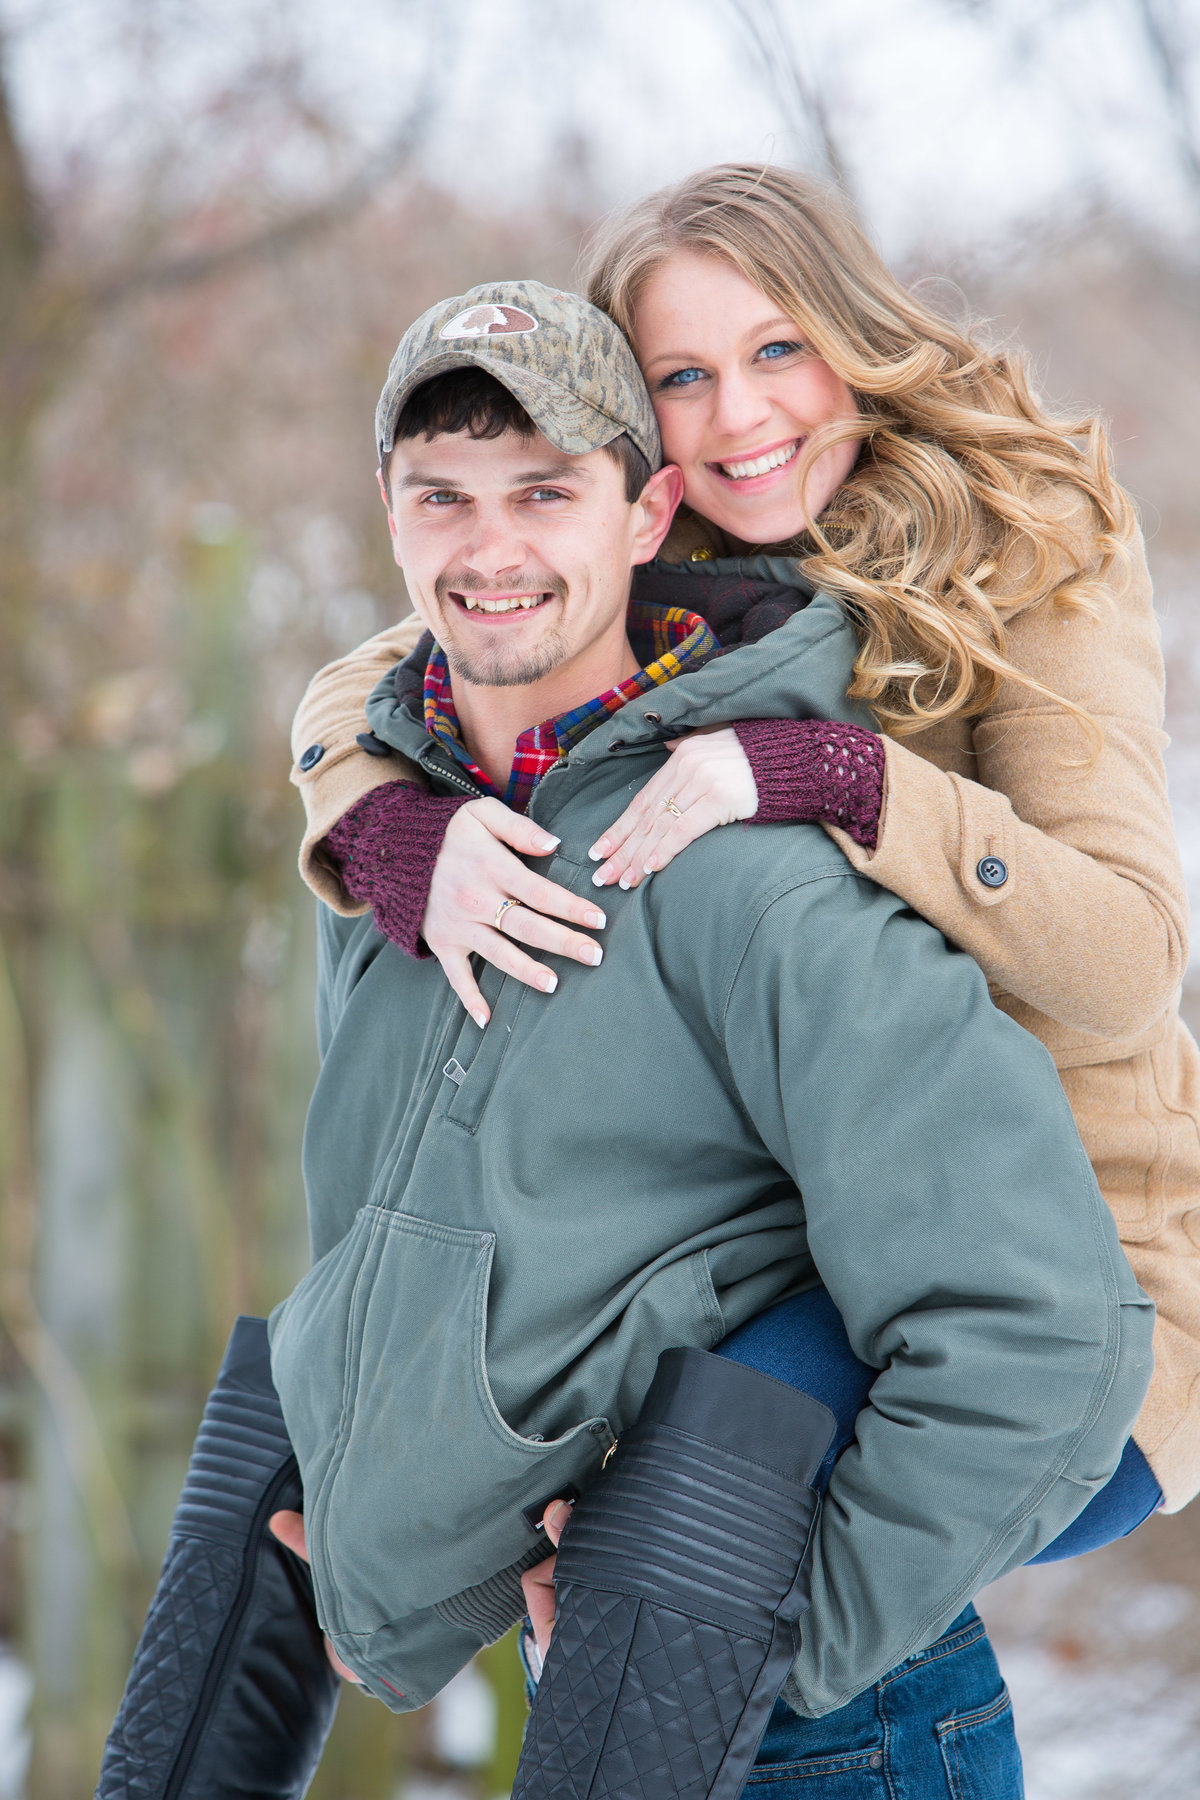 engagement photo outdoors winter